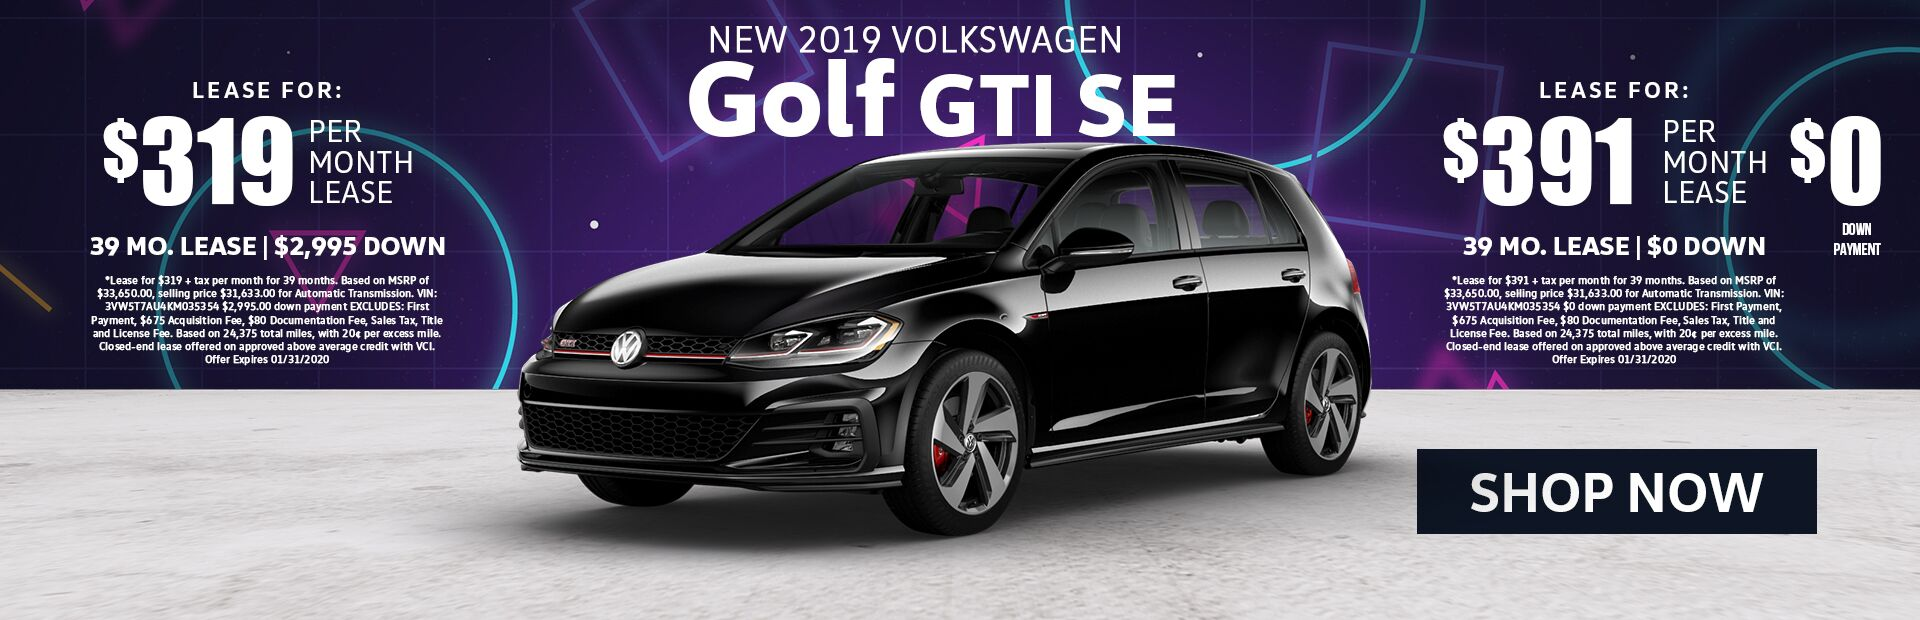 2019 New Golf GTI SE Lease Special